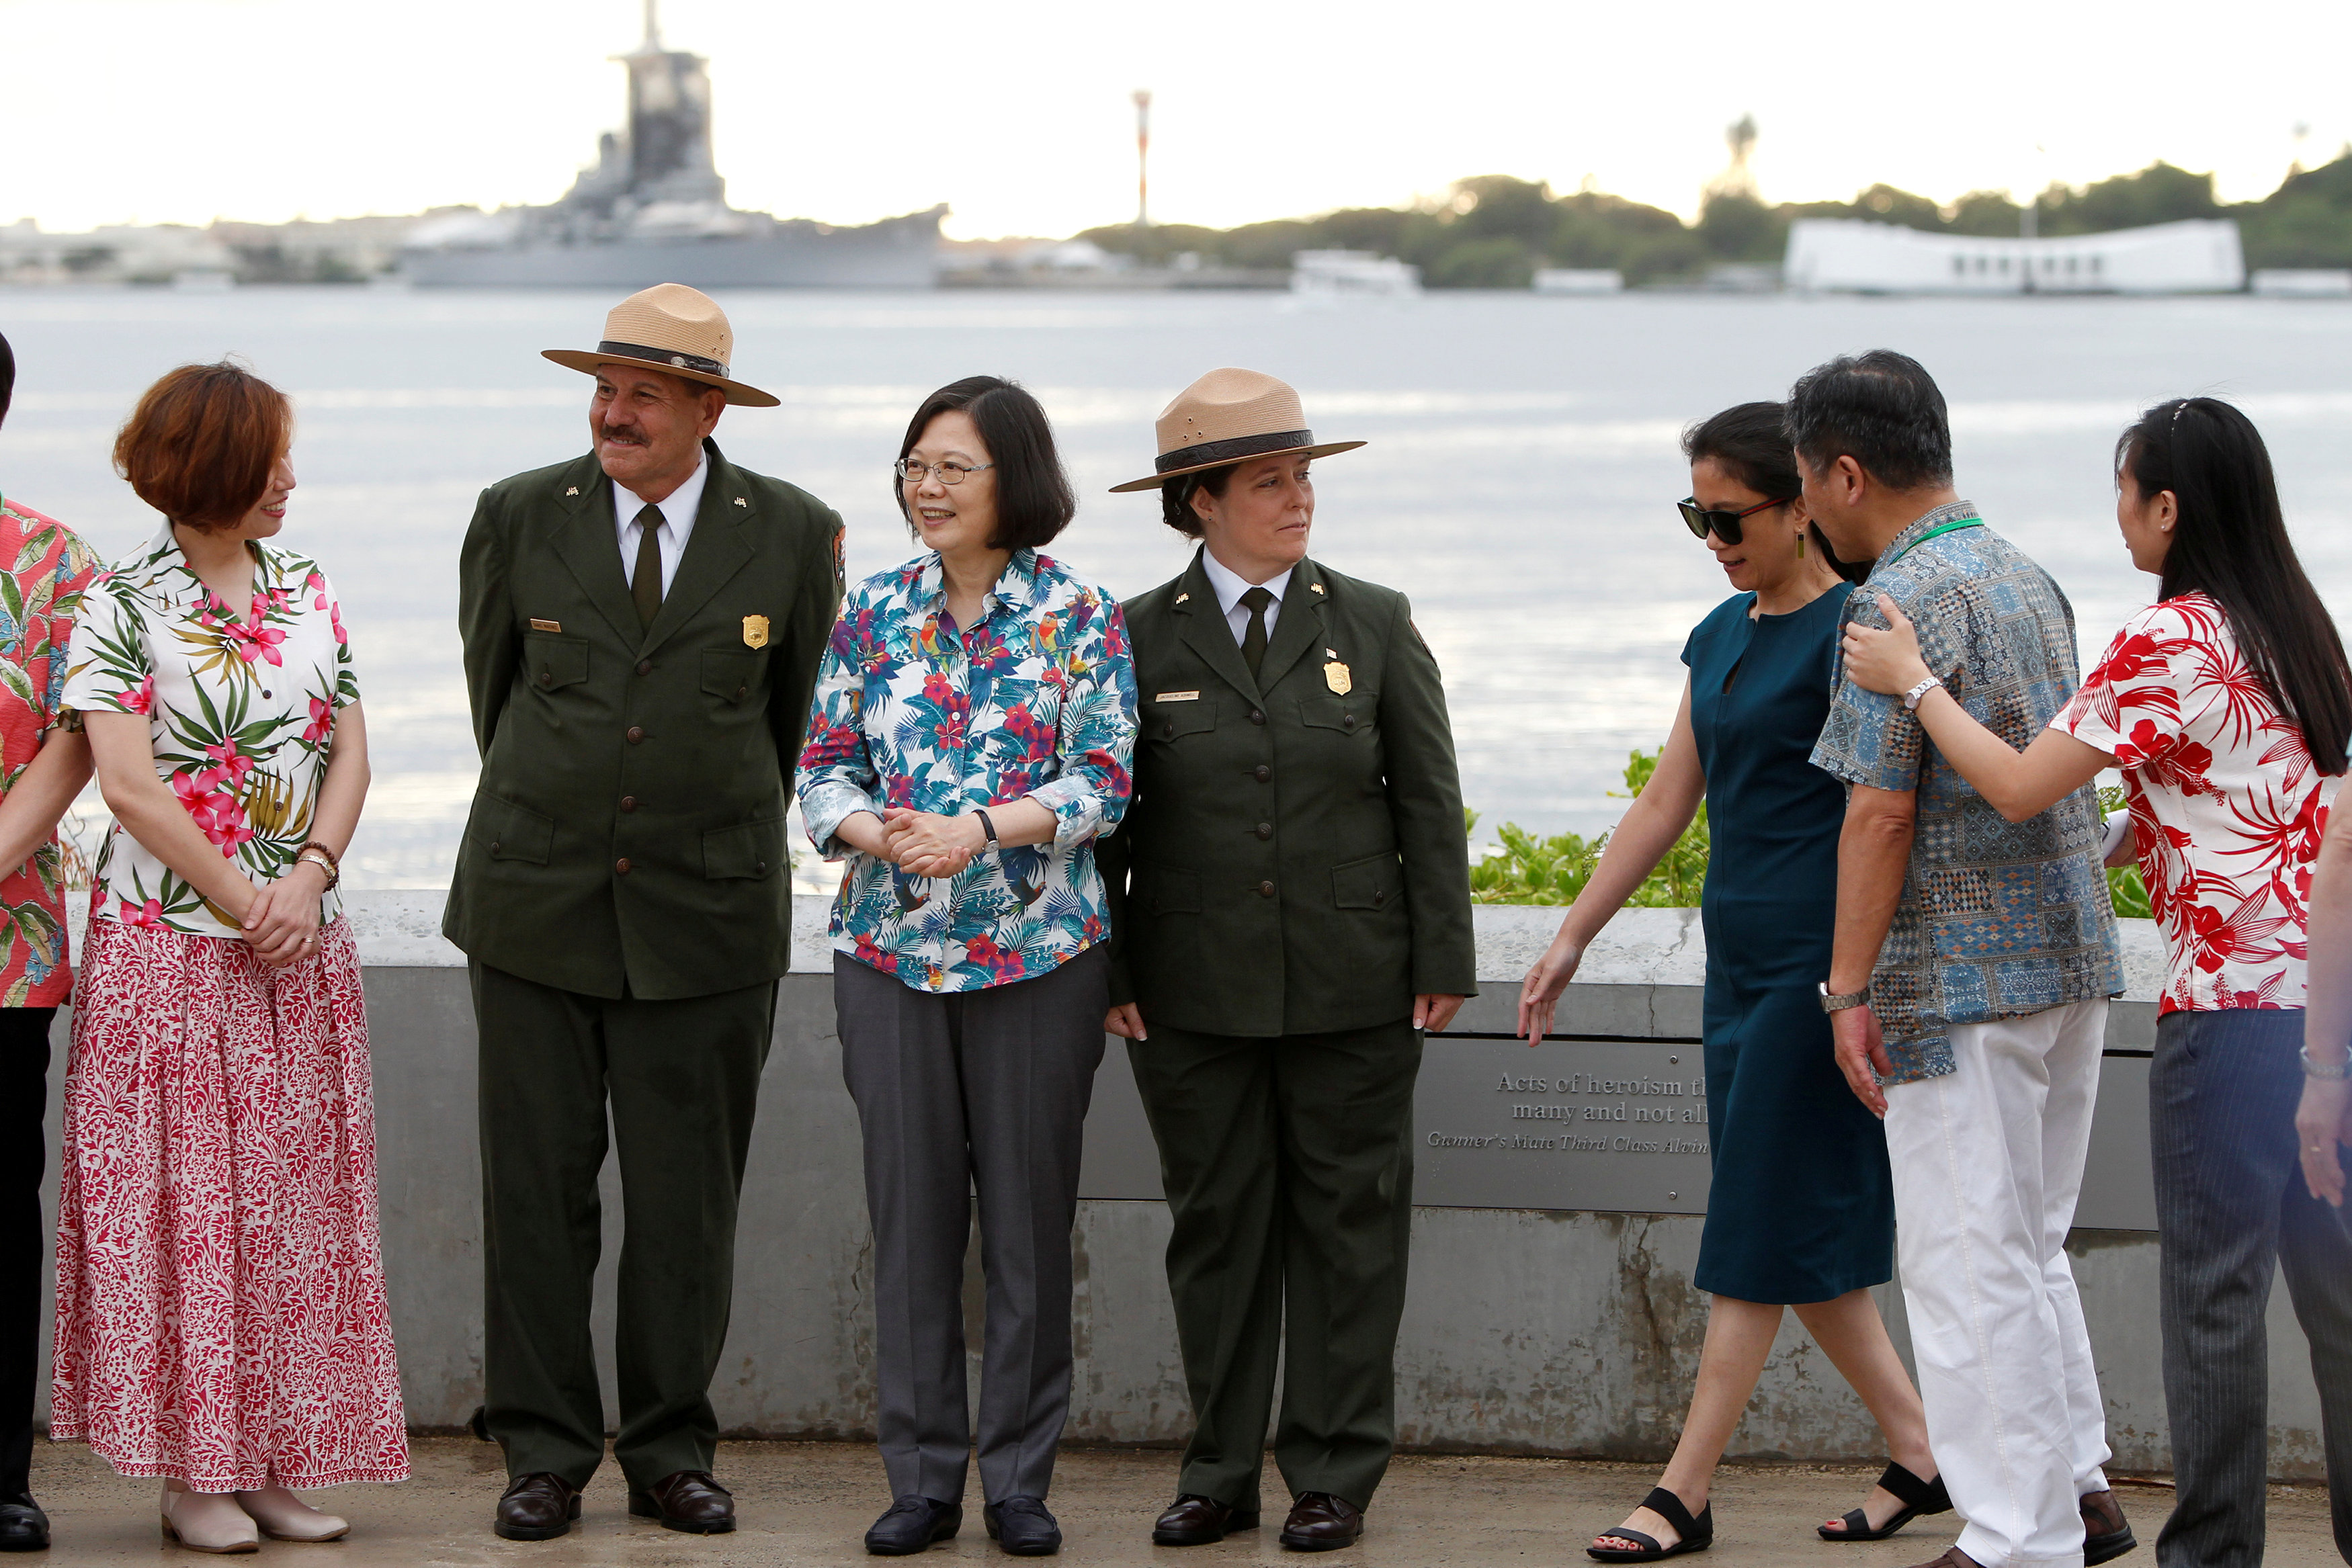 Taiwan's President Tsai Ing-wen, (3rd L), on transit enroute to Pacific island allies, stands with delegates and park service members at the USS Arizona Memorial at Pearl Harbor near Honolulu, Hawaii, U.S. October 28, 2017.